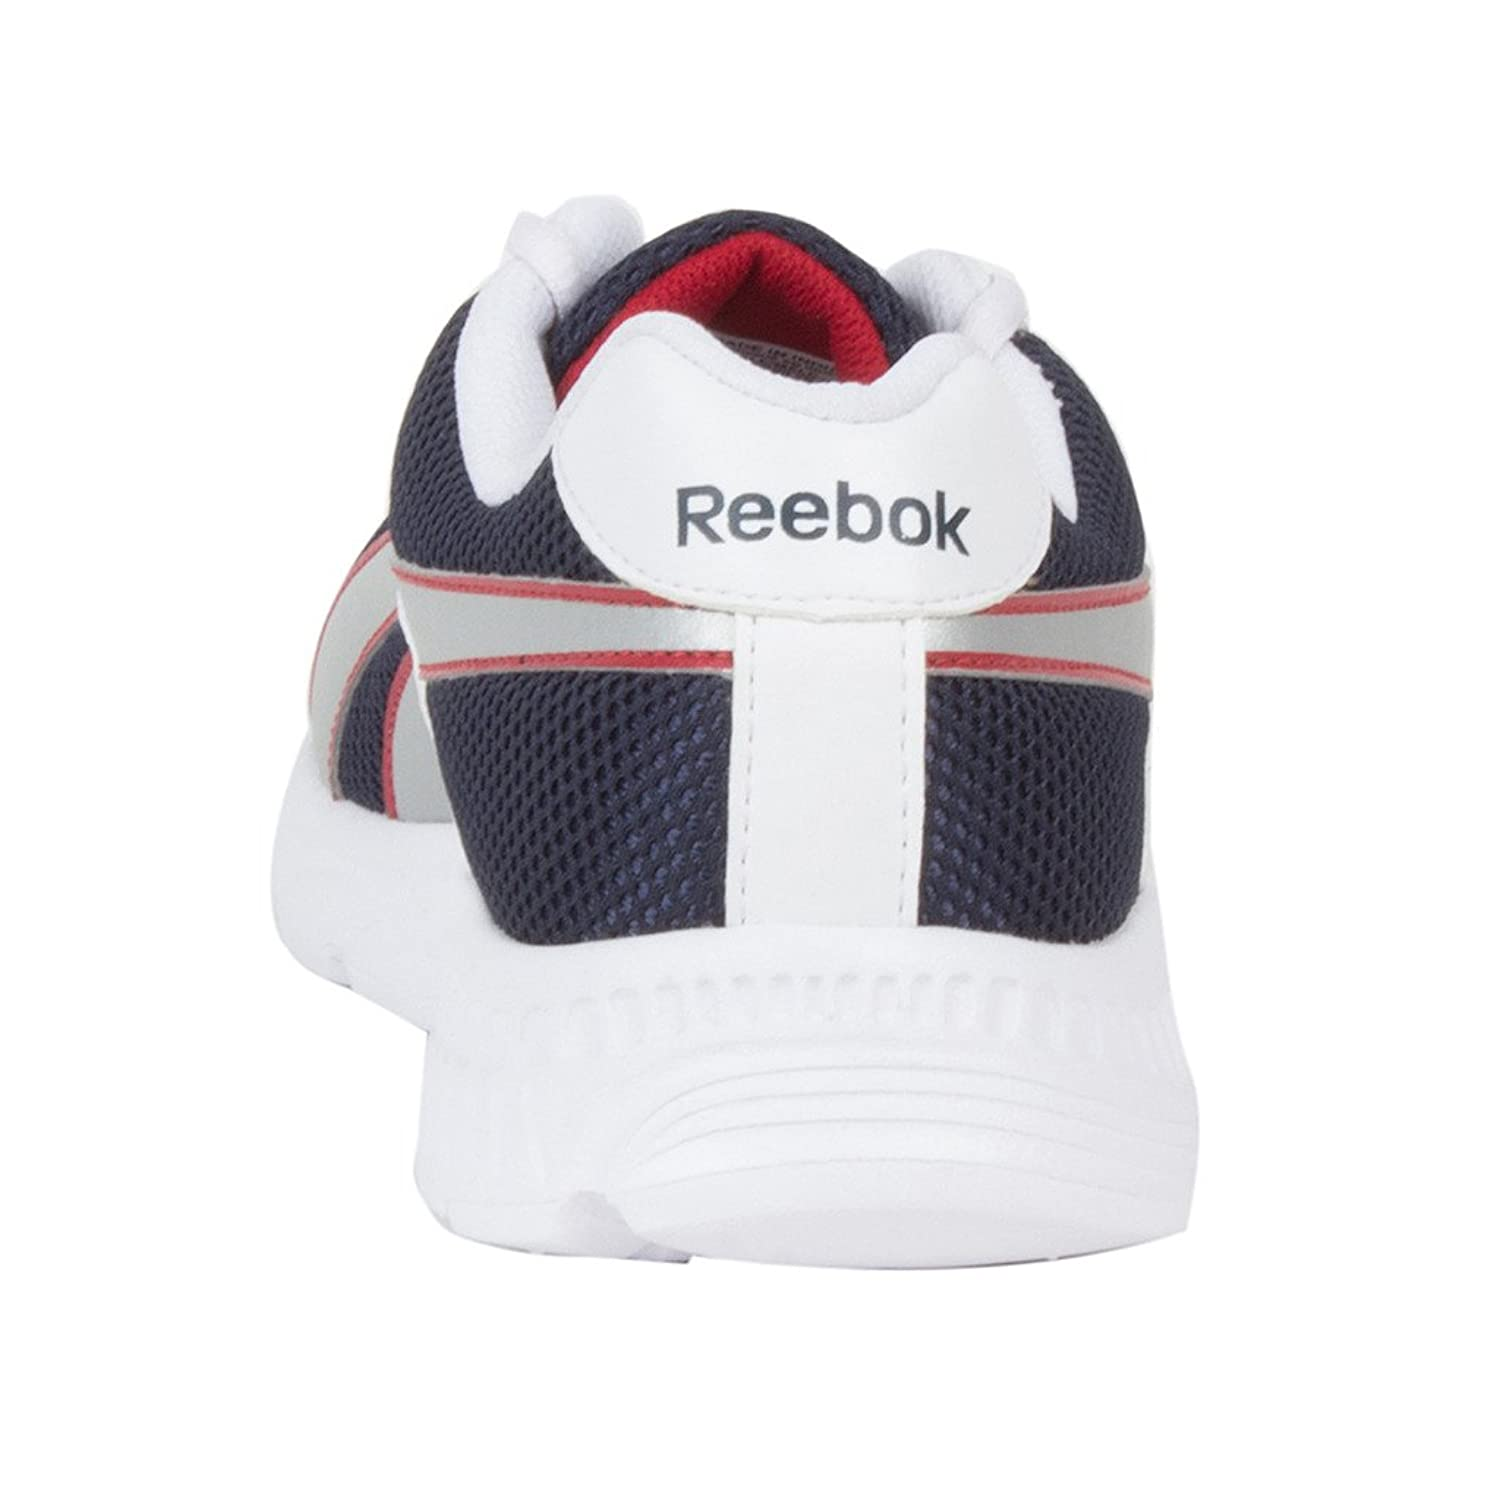 8f352ba9bf8 ... Reebok Men s Acciomax LP Running Shoes  Buy Online at Low Prices in  India - Amazon ...